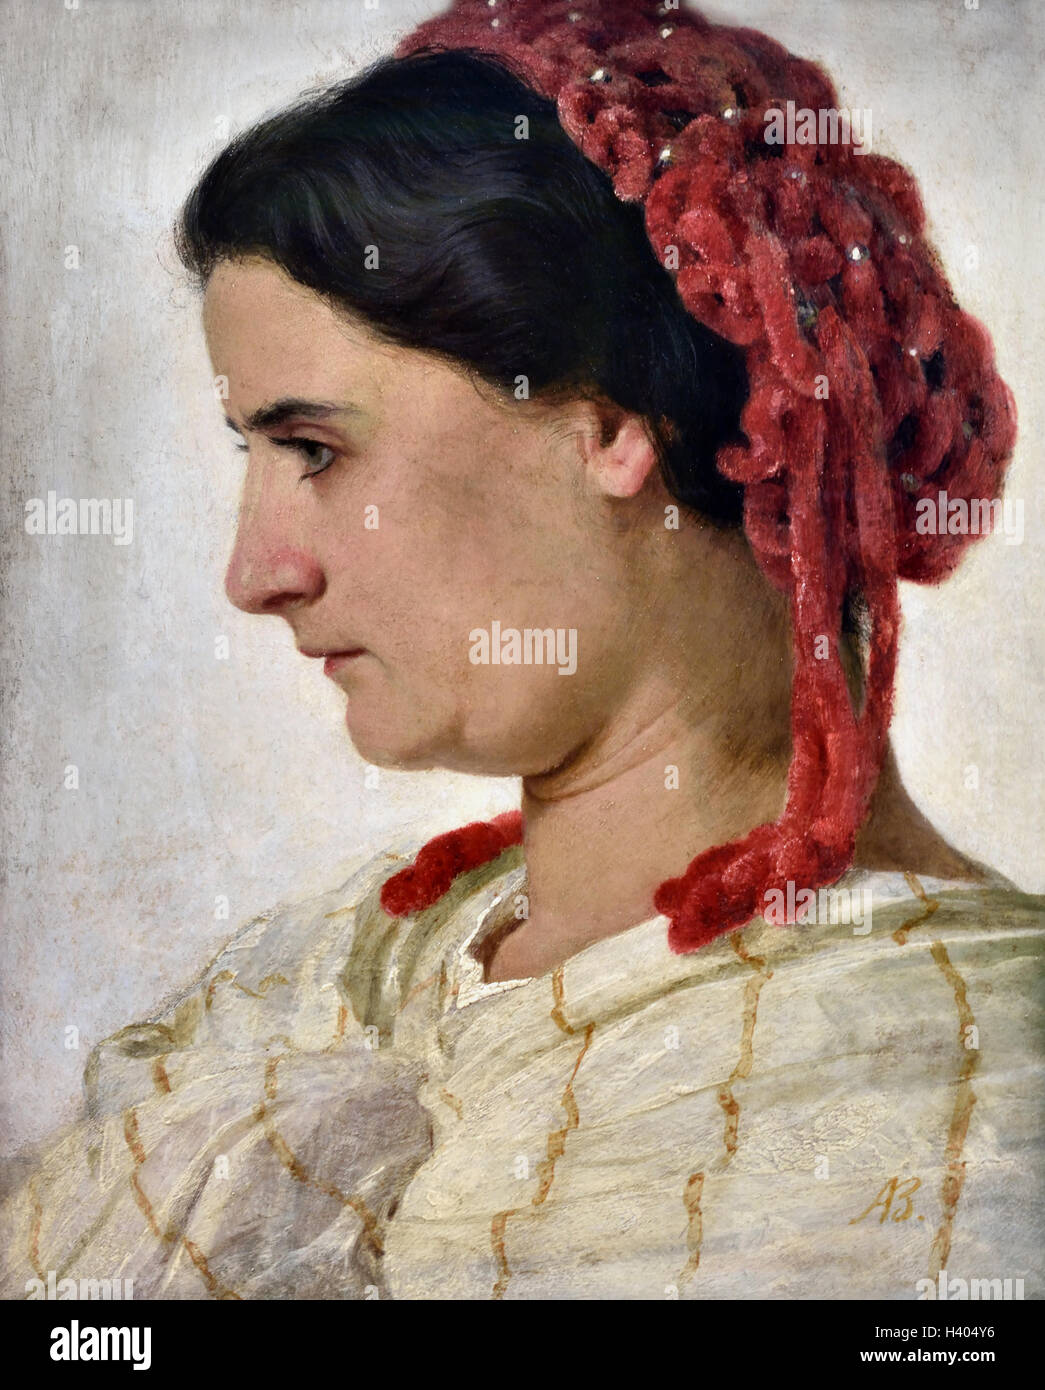 Arnold Böcklin 1827-1901 seine Ehefrau Angela mit rotem Haarnetz - His wife Angela with a red hairnet 1863 - Stock Image